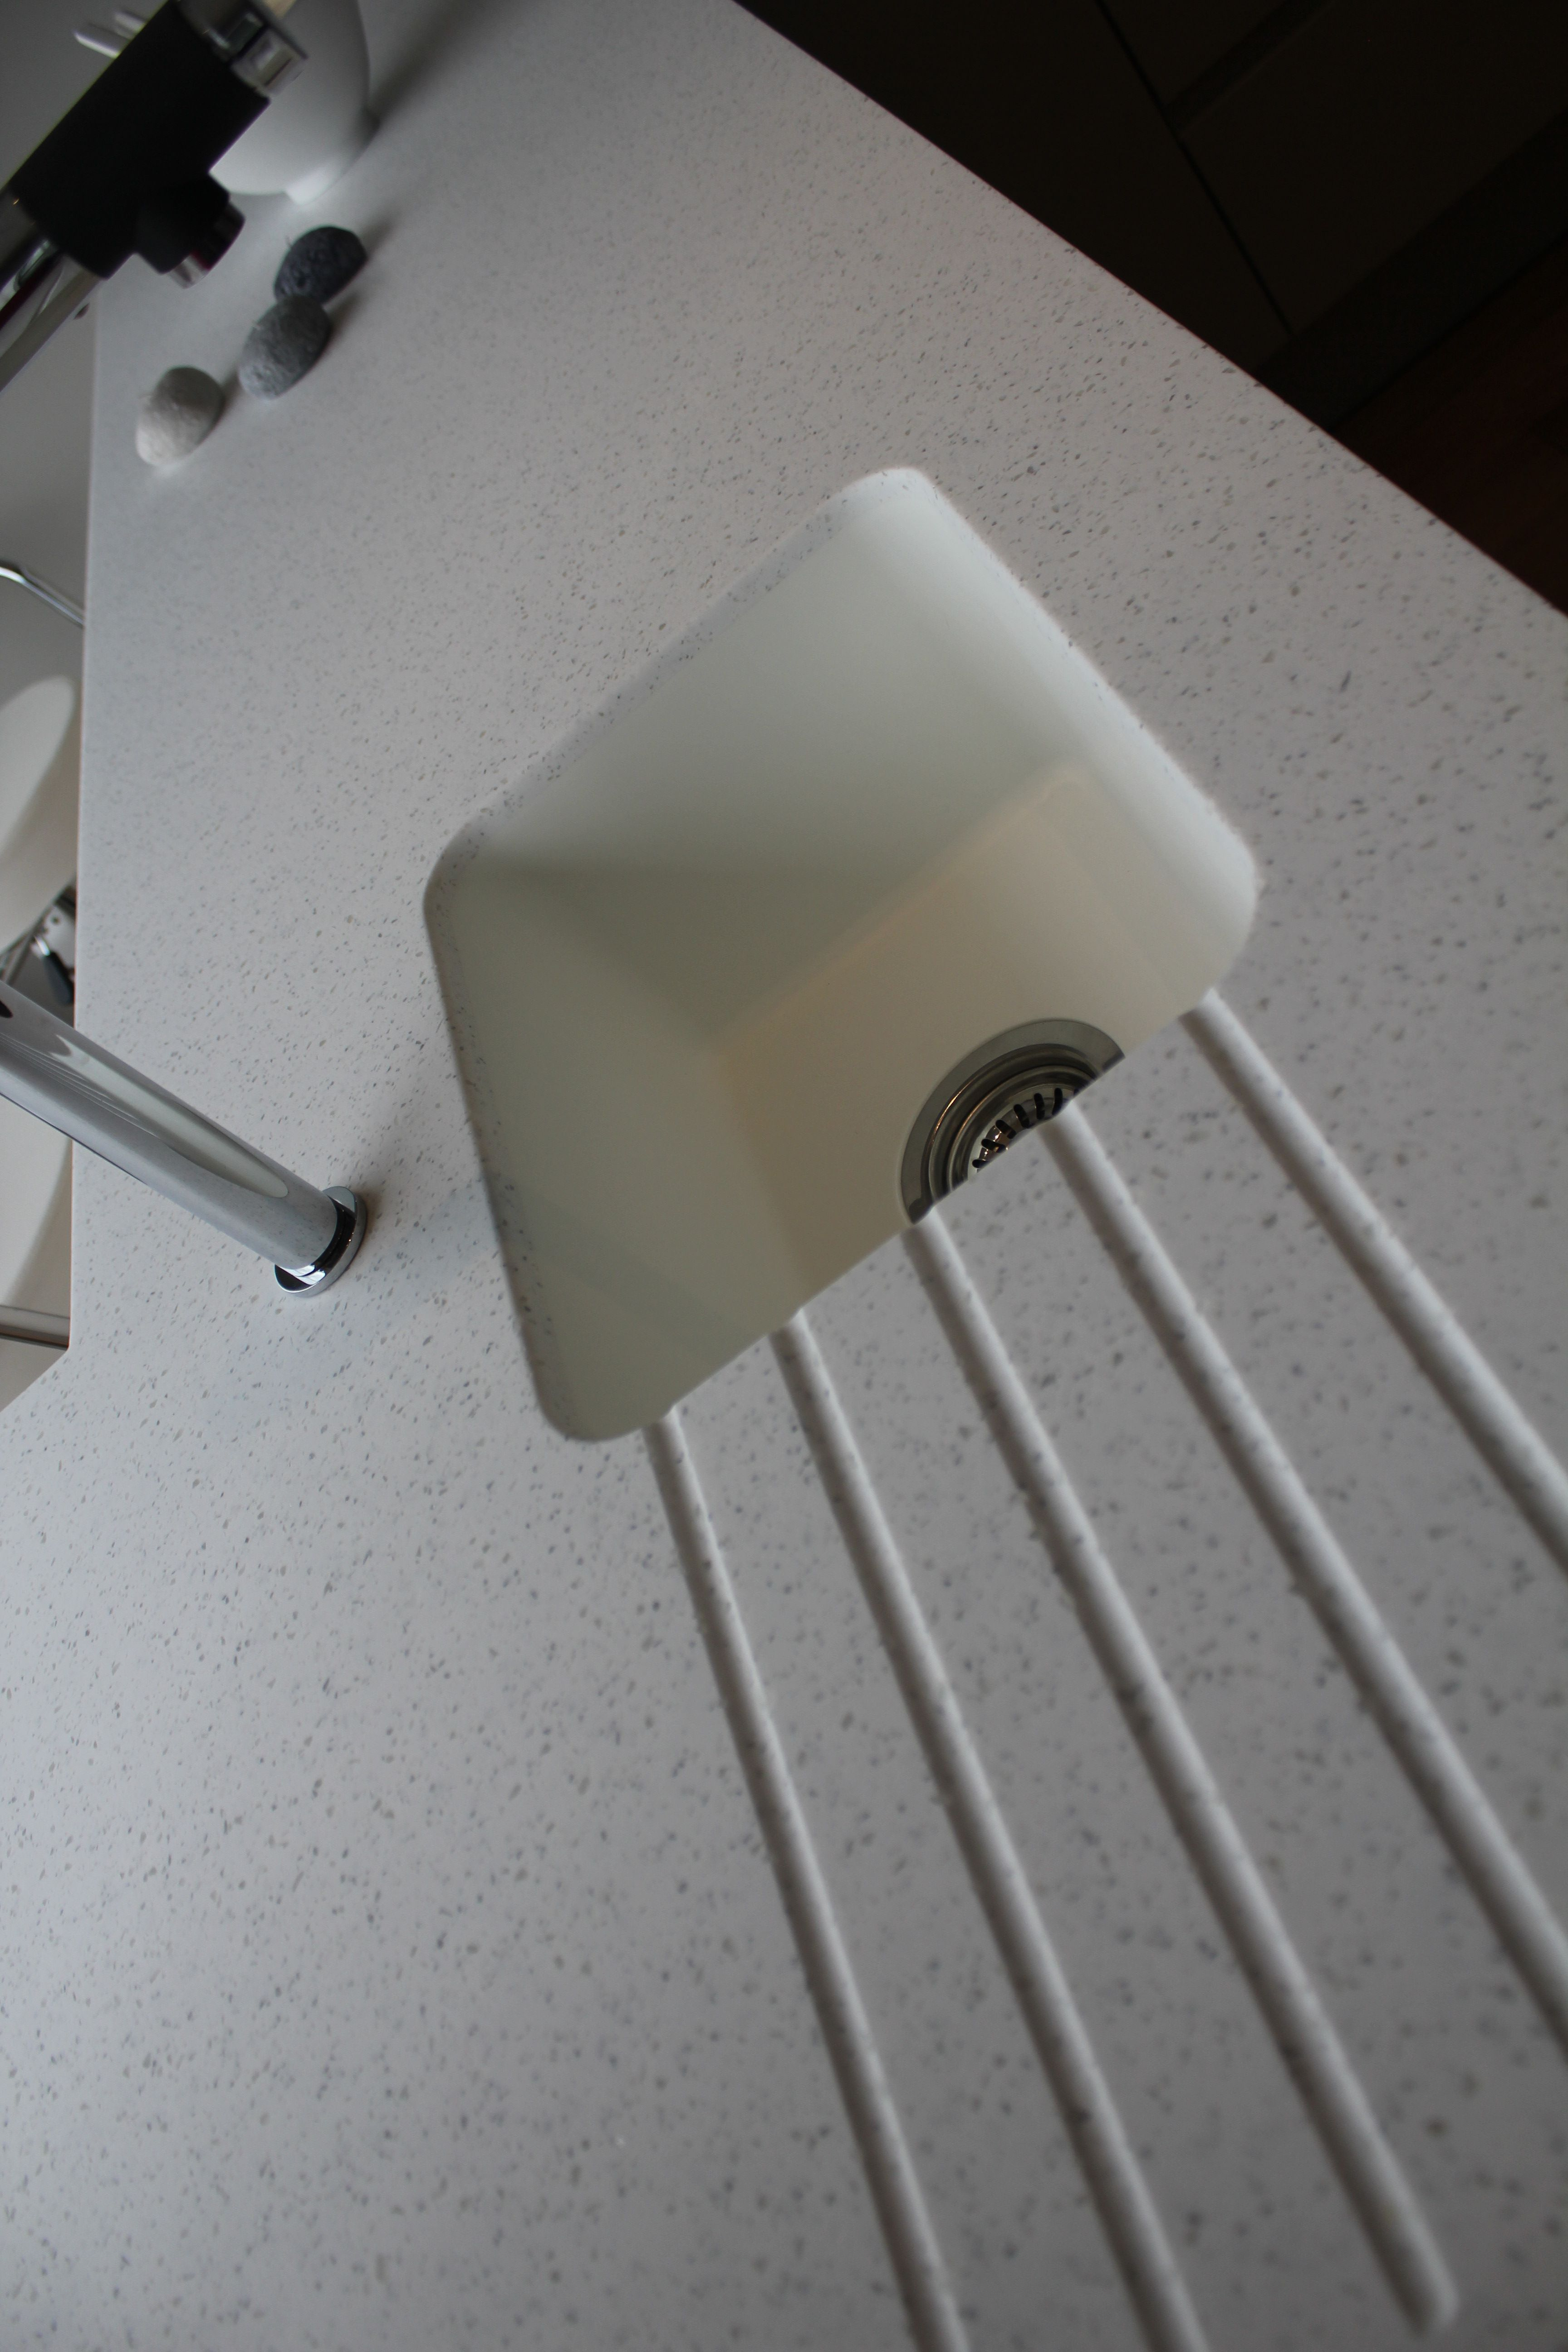 Stunning Corian Sink. With Hand Routed Draining Board. Simply Beautiful. # Corian #